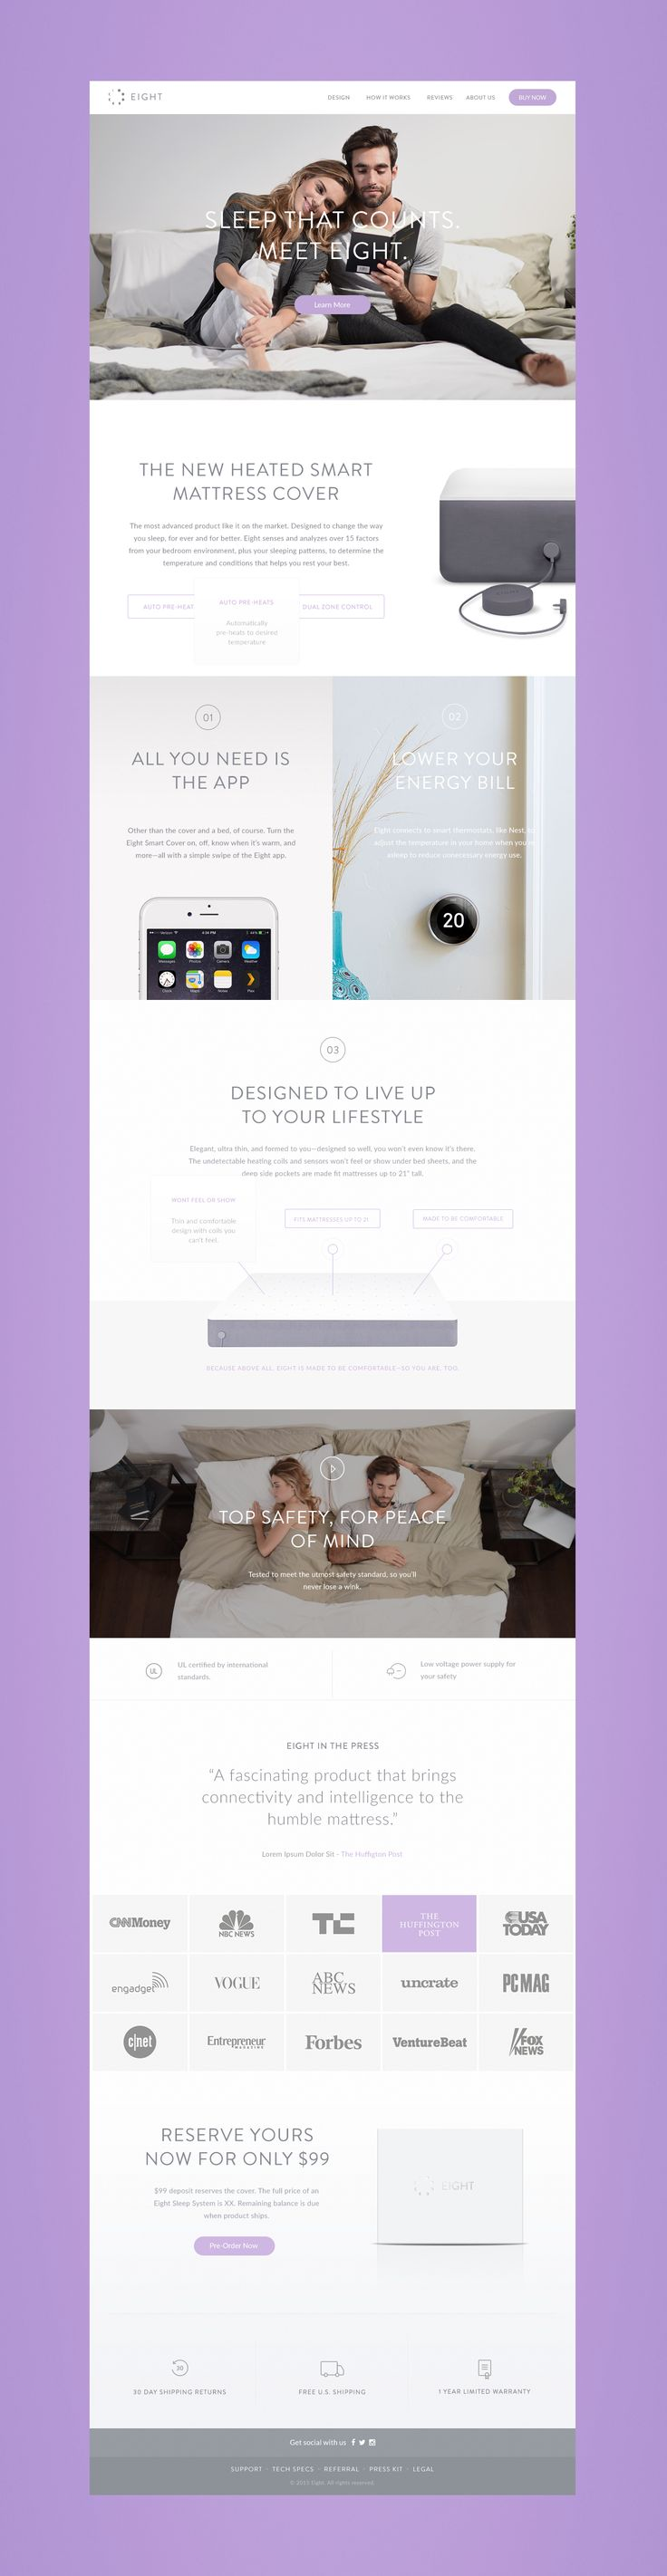 Created as a way to solve the founder's sleeping problems, Eight is a smart mattress cover focused on leveraging data from people's sleep patterns and disruptions in order to modify the environment accomplishing the perfect night sleep cycle. The cover em…